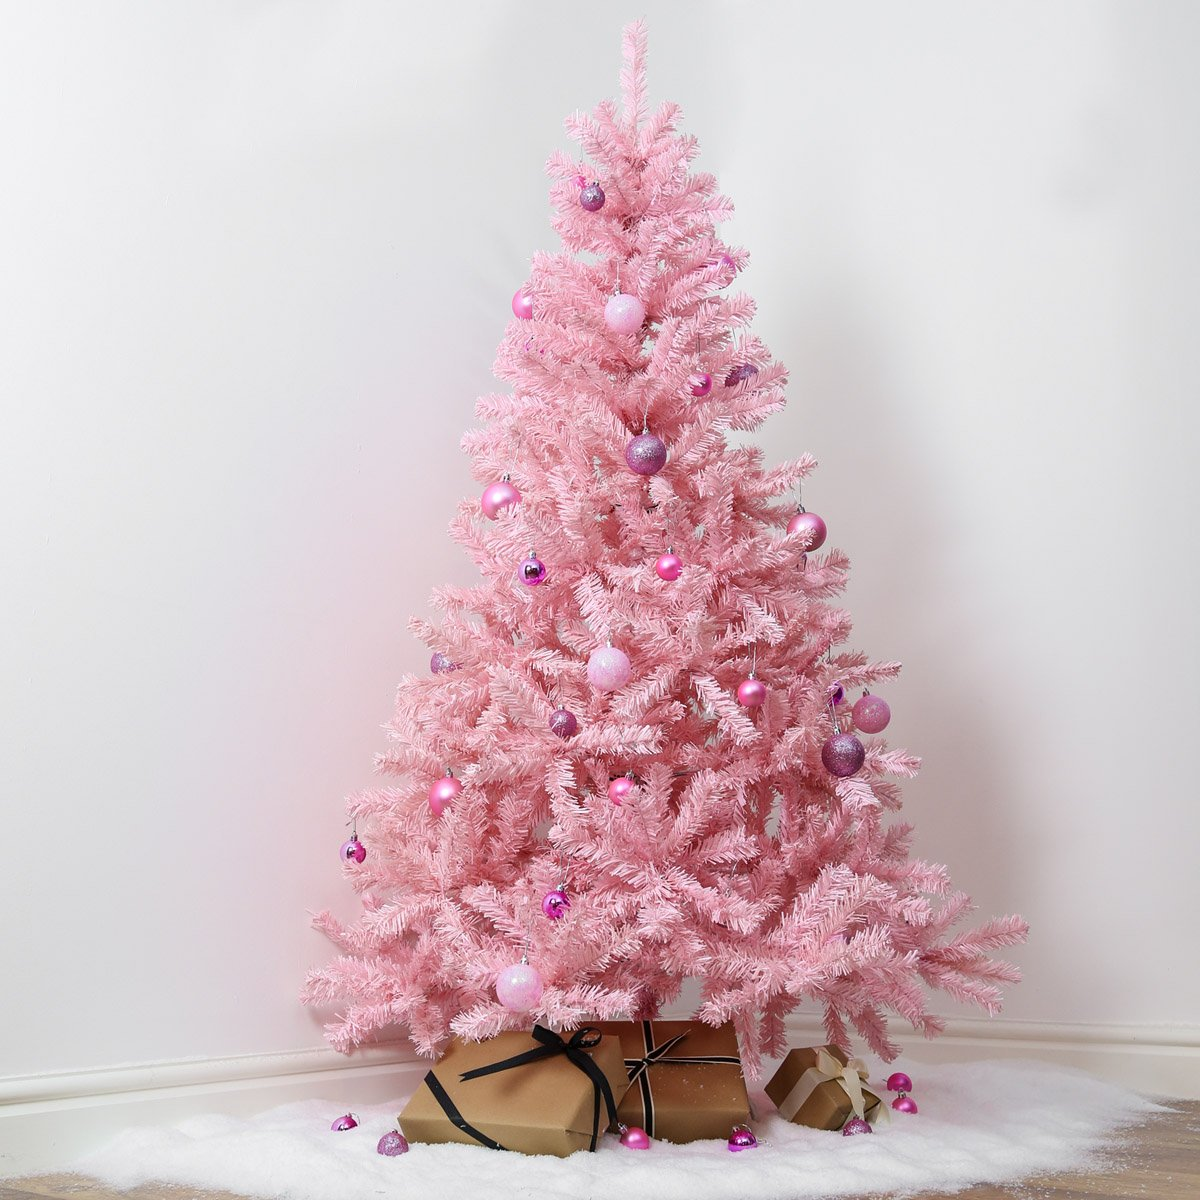 pink indoor artificial christmas tree by festive lights 7ft amazoncouk kitchen home - Pink Christmas Tree